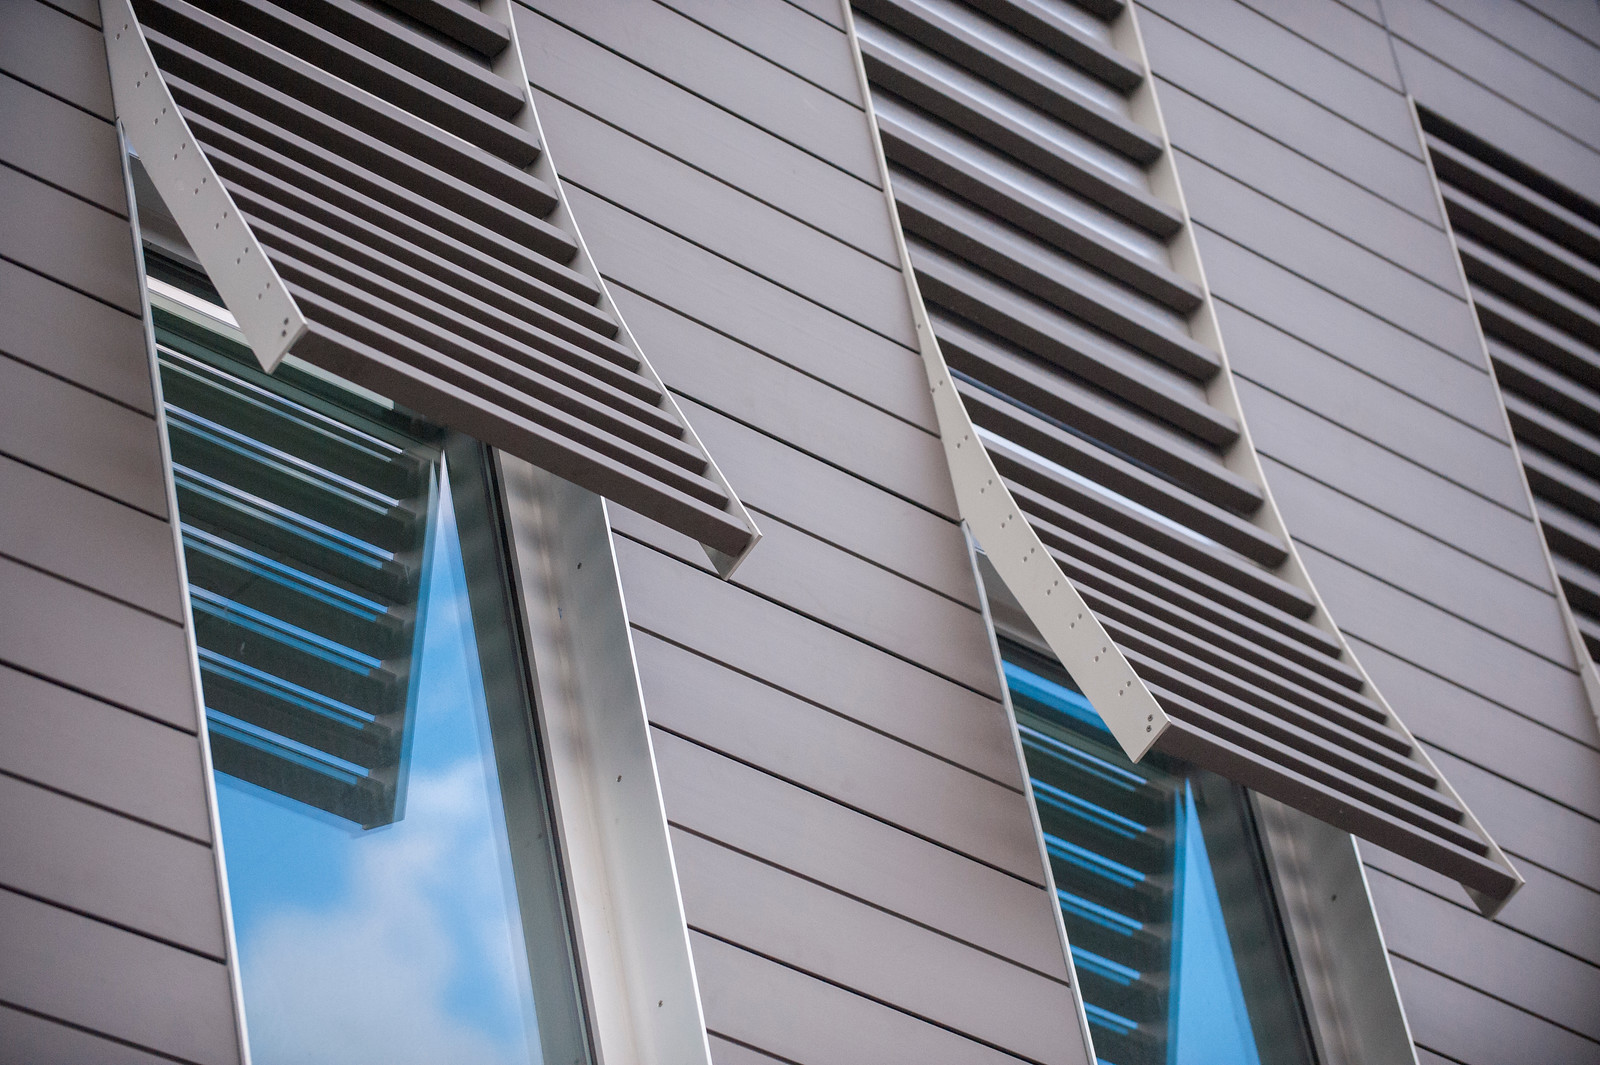 Windows on the Psychological and Brain Sciences Building with slats